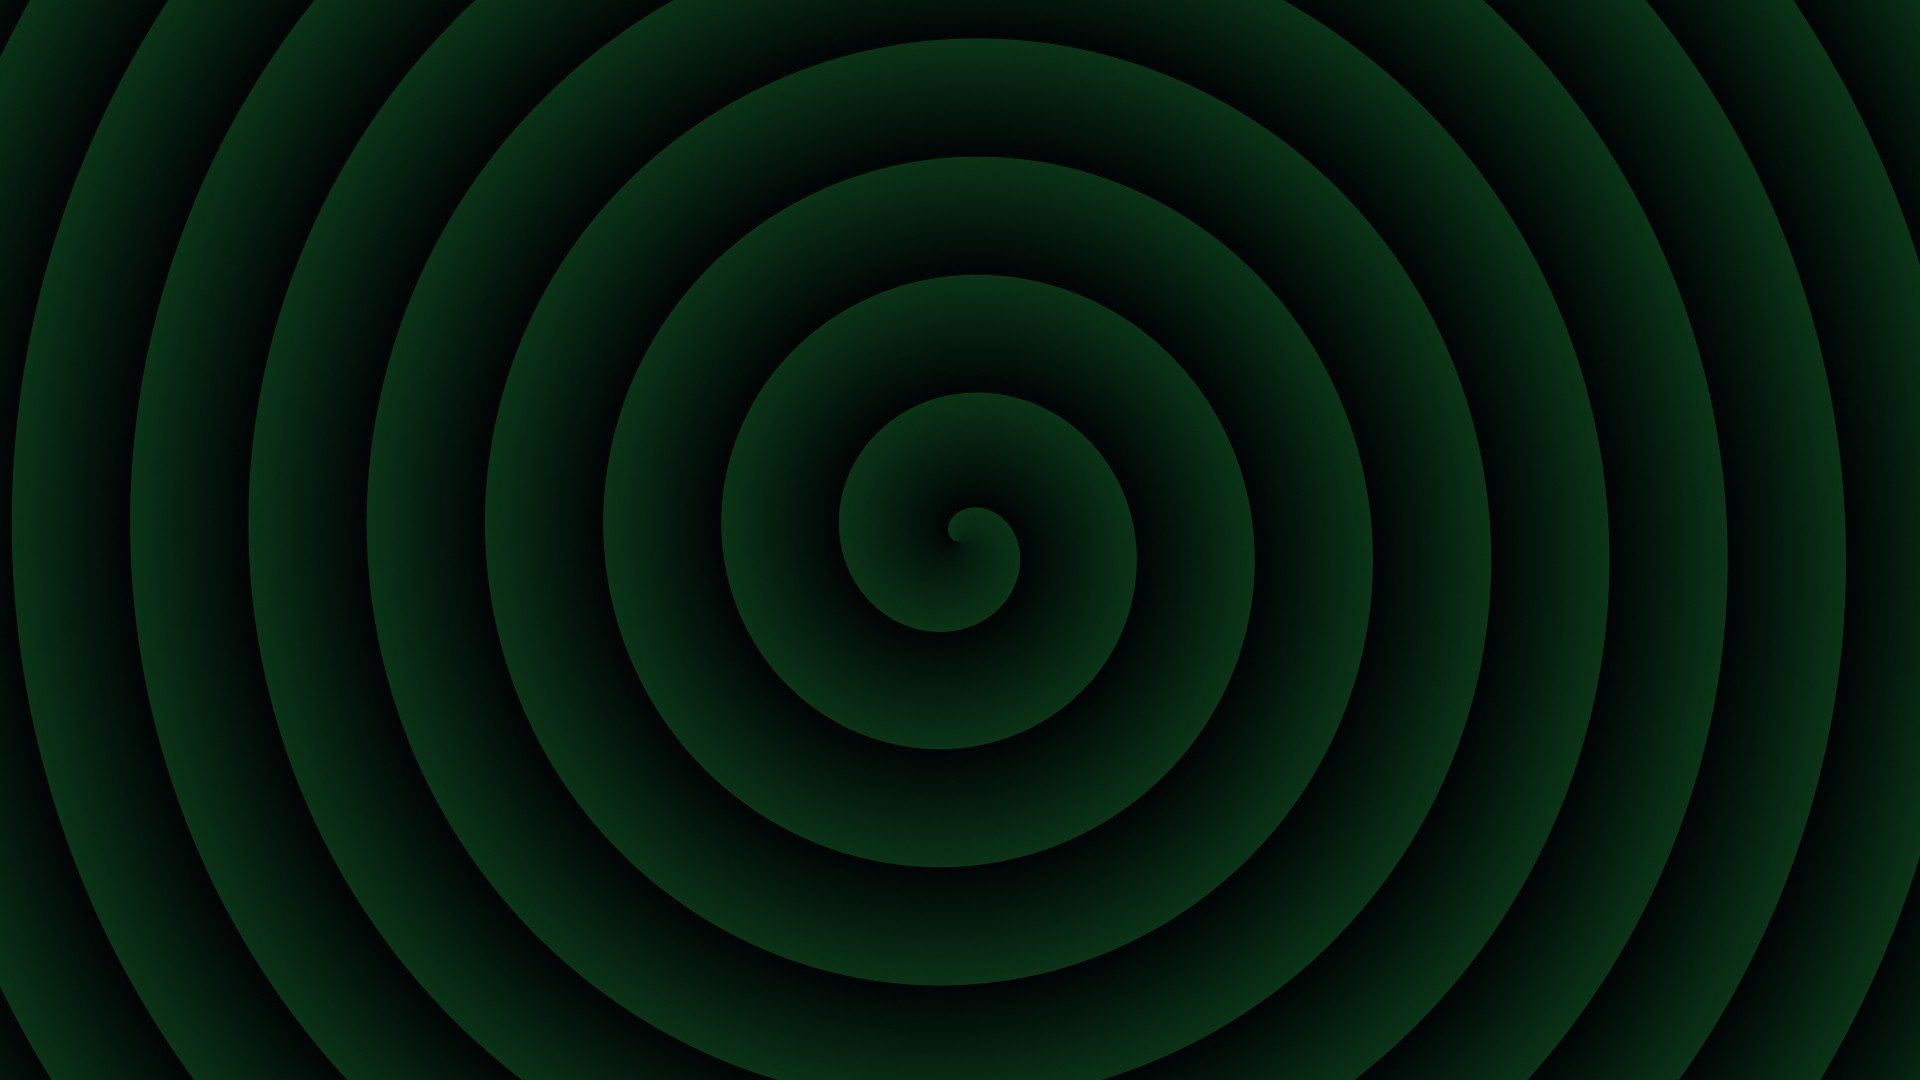 Spiral Wallpaper 3d Green Spiral Abstract Wallpapers Hd Desktop And Mobile